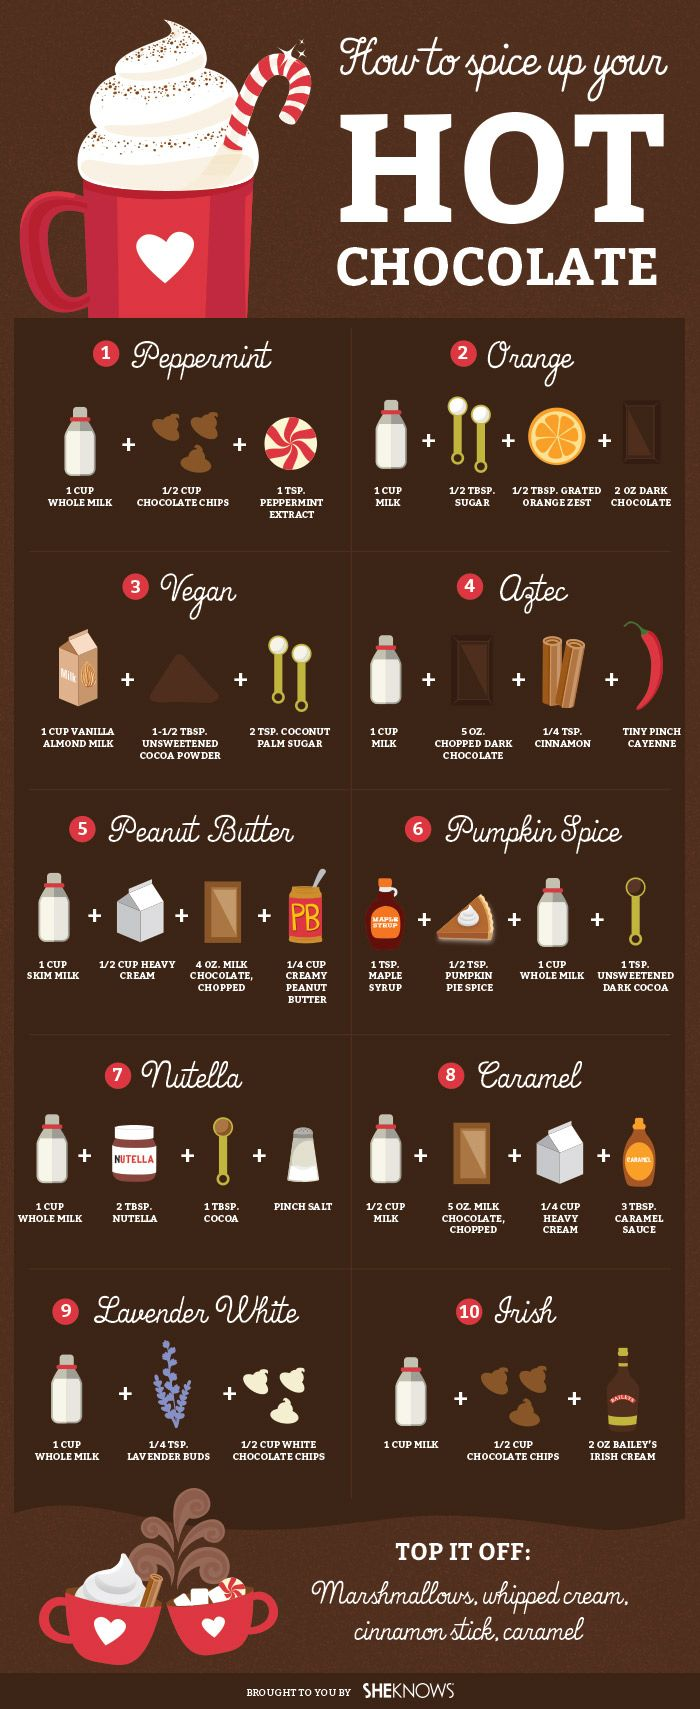 How to spice up your hot chocolate (or espresso)